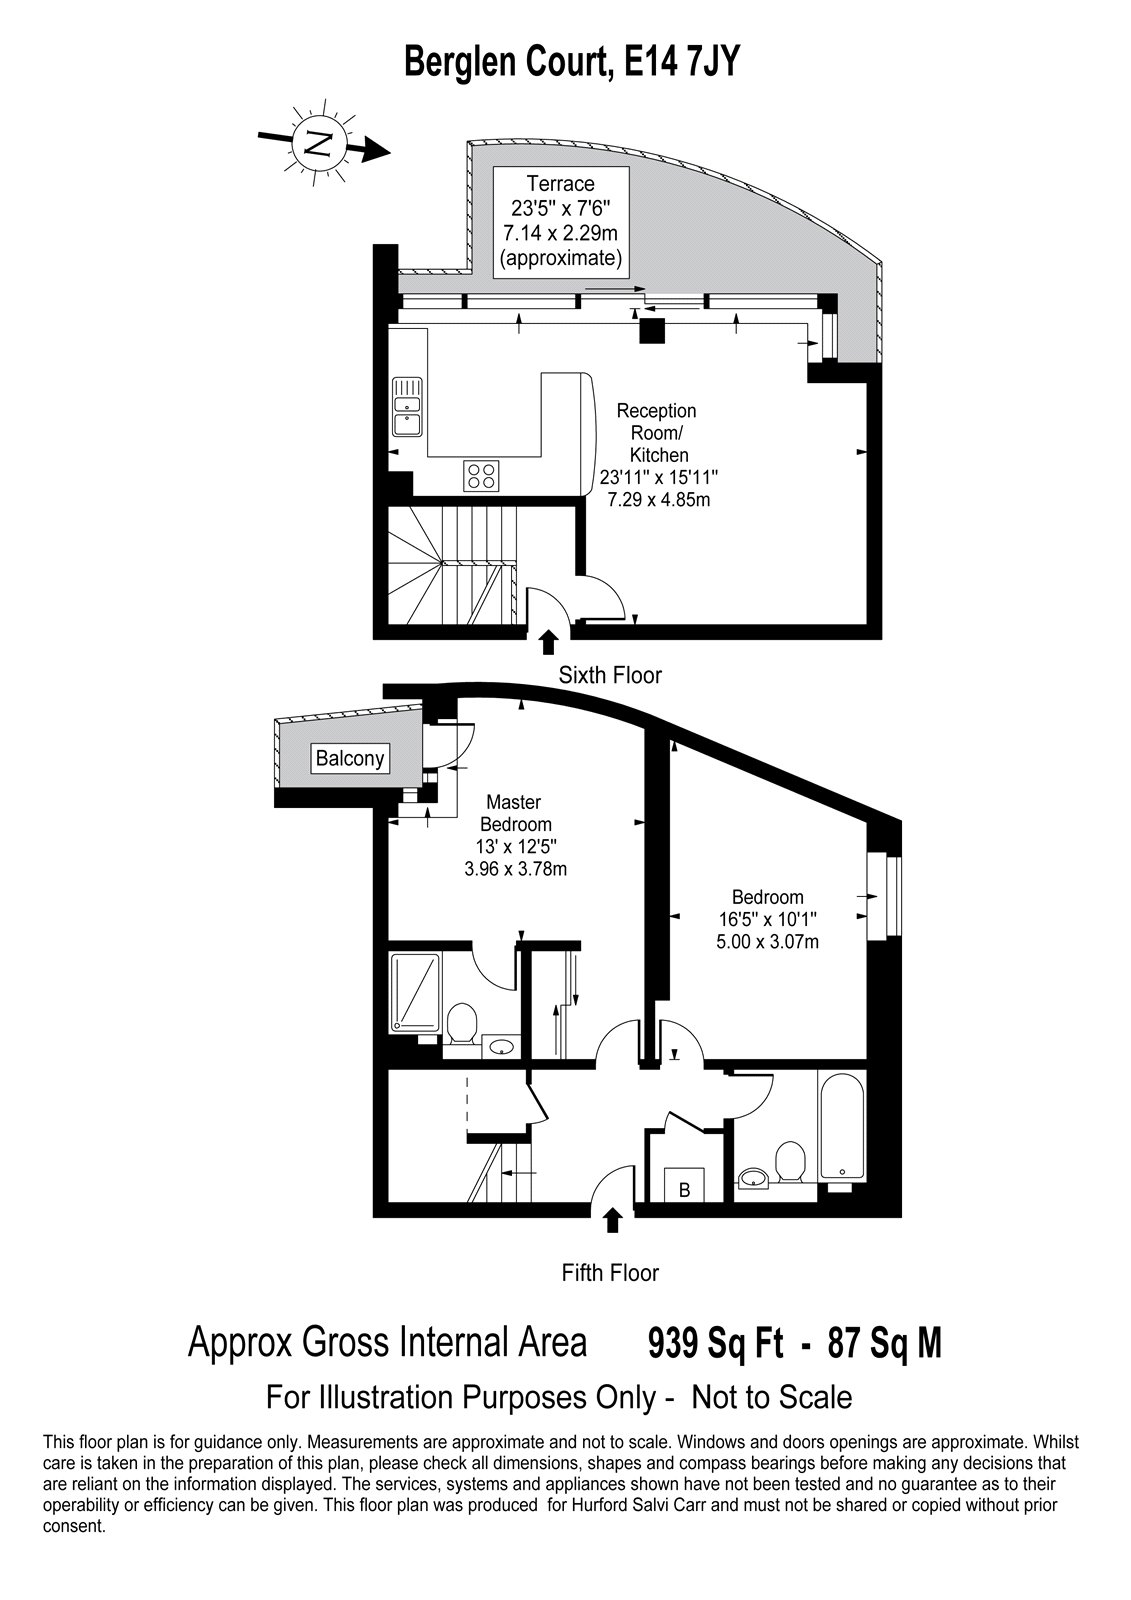 Berglen Court, Limehouse, E14 floorplan